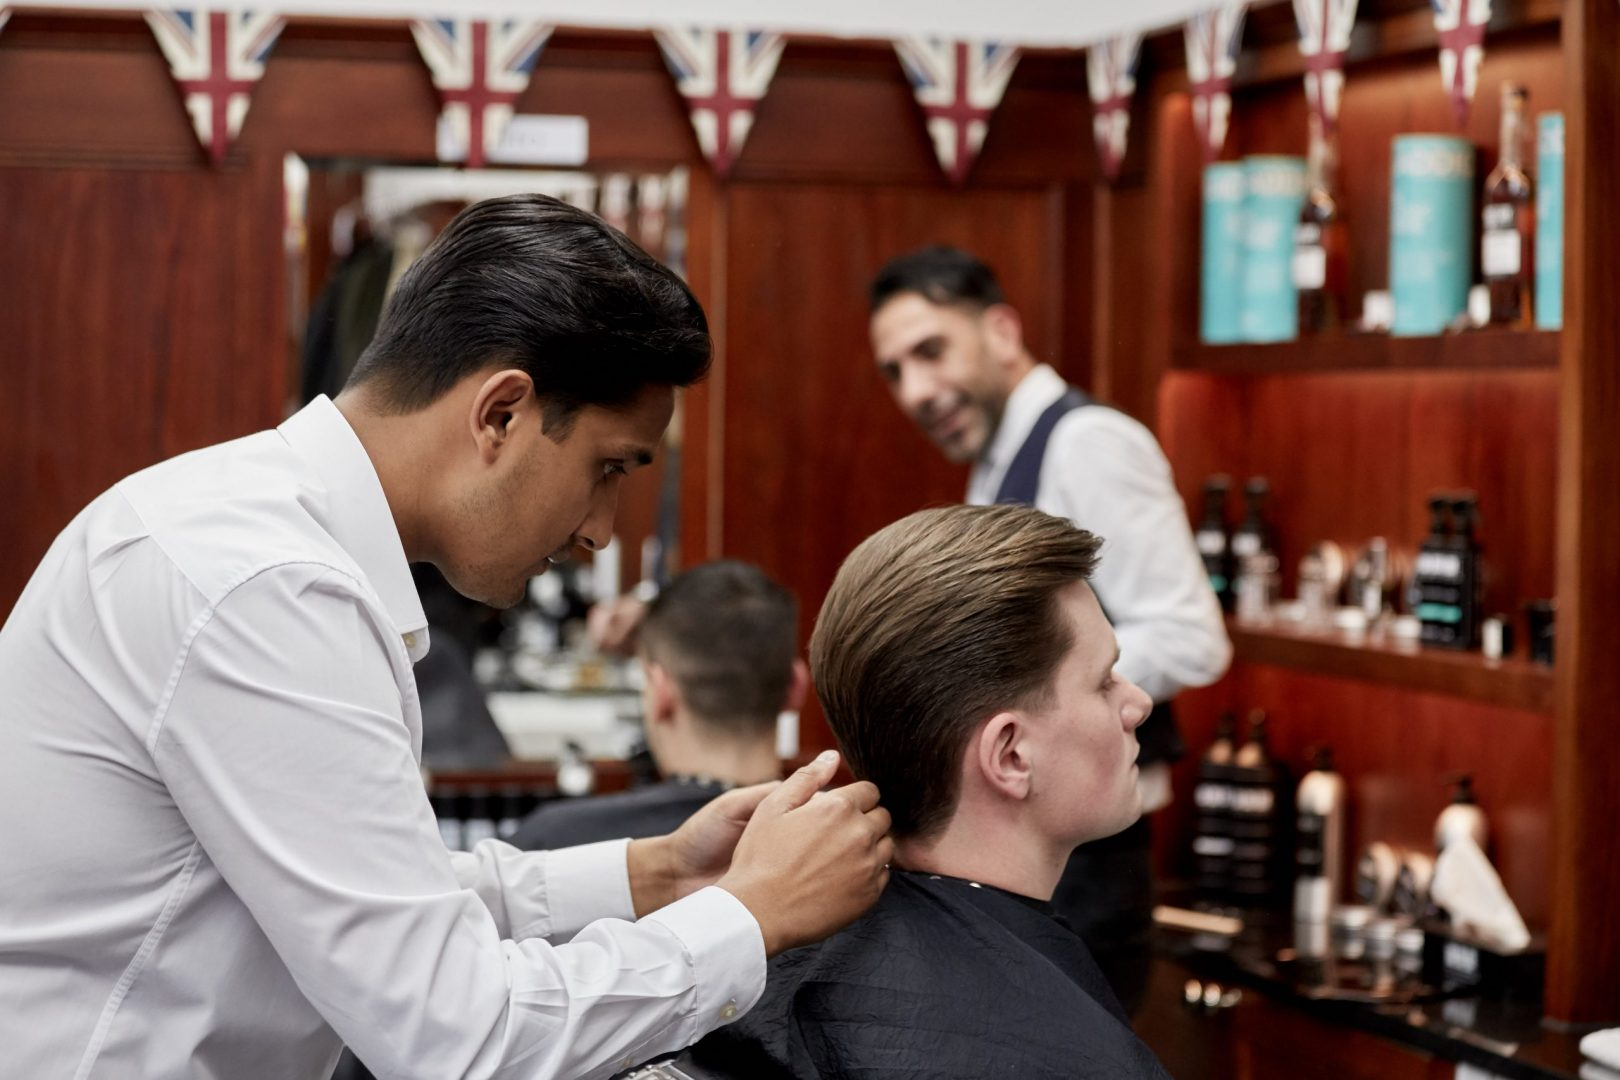 Pall Mall Barbers, Haircuts,Best Barber Shop Central London, Hair Styles, Hair Dressers near me